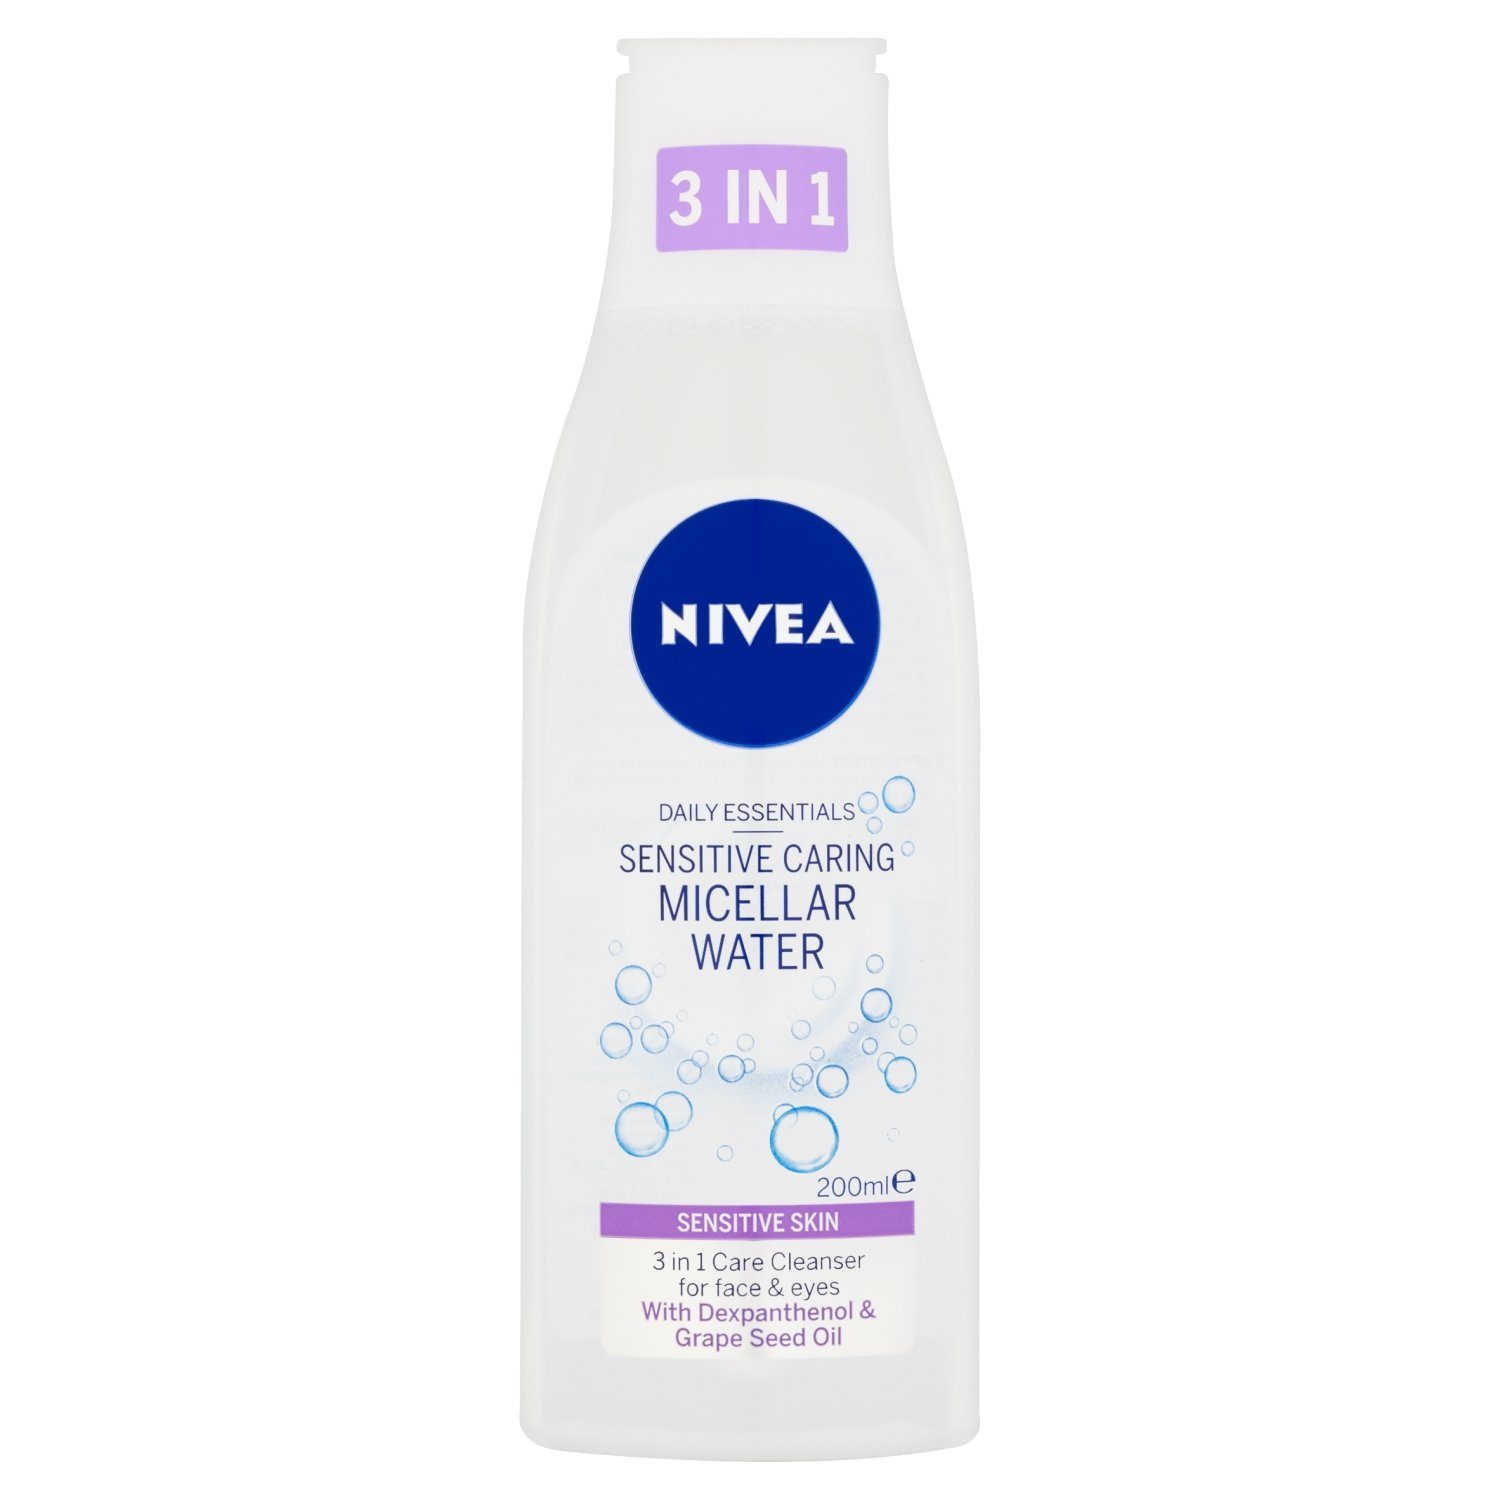 Nivea giornalieri Essentials 3-in-1 Sensitive Caring Micellare Acqua, 200ml - Confezione da 3 Beiersdorf UK Ltd 82382